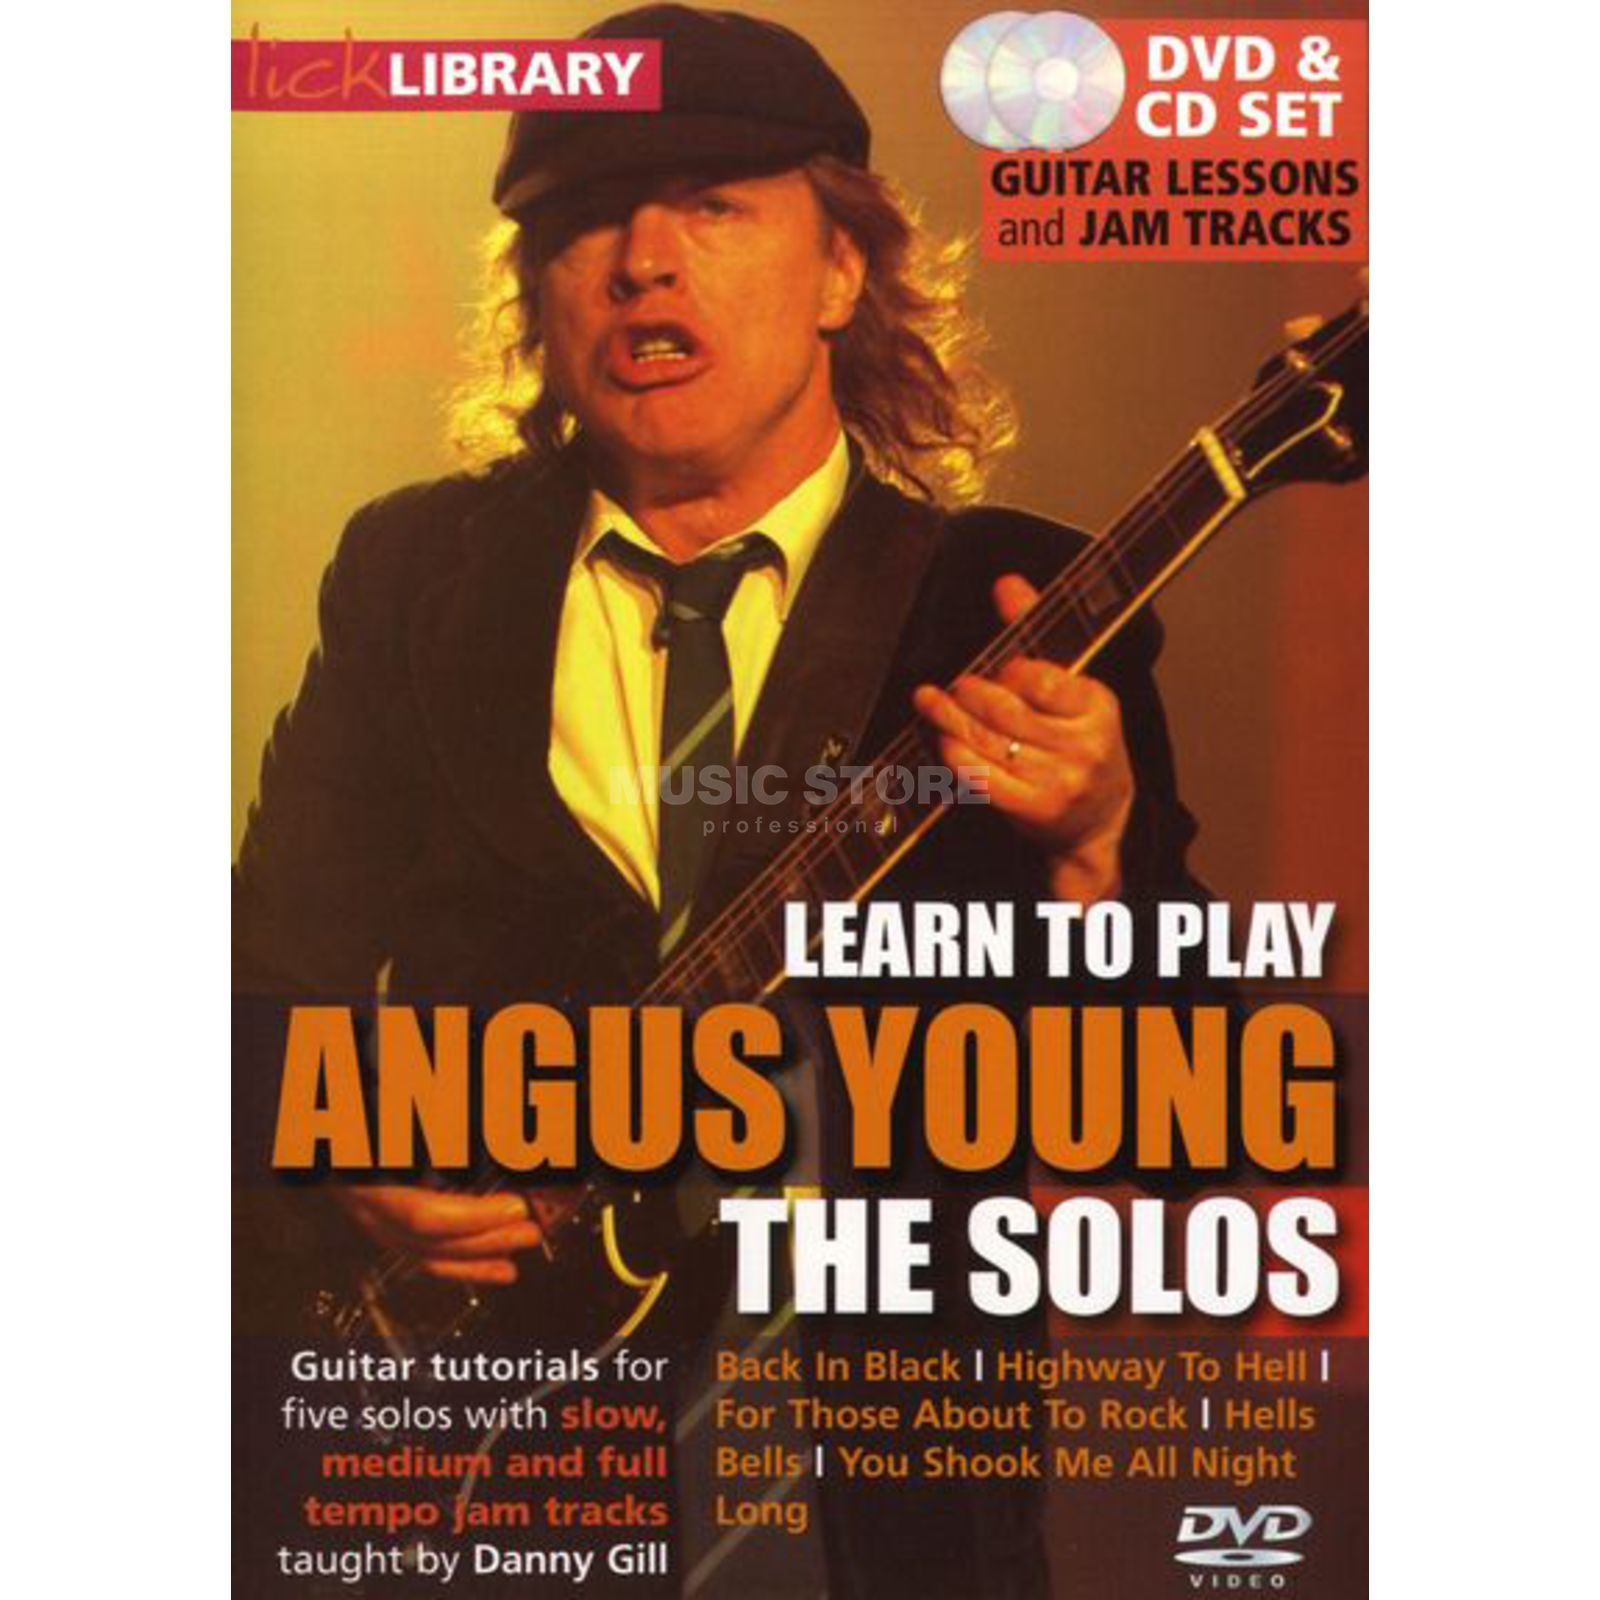 Roadrock International Lick Library: Learn To Play Angus Young - The Solos DVD Produktbild